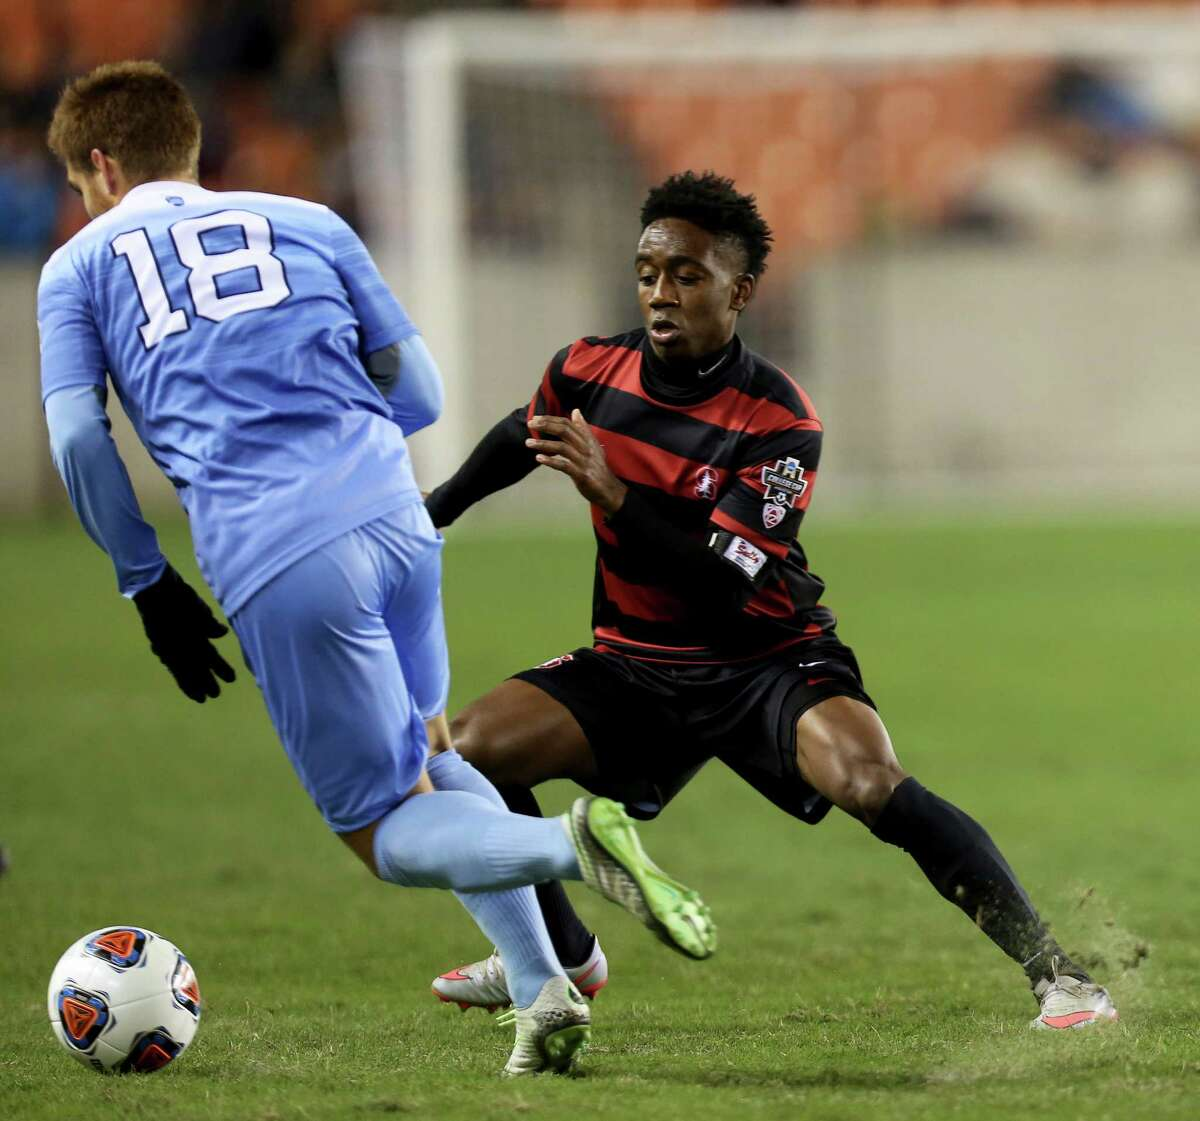 North Carolina's Alan Winn, left, tries to elude the defense of Stanford's Bryce Marion in the first half of Stanford's shootout win at BBVA Compass Stadium.